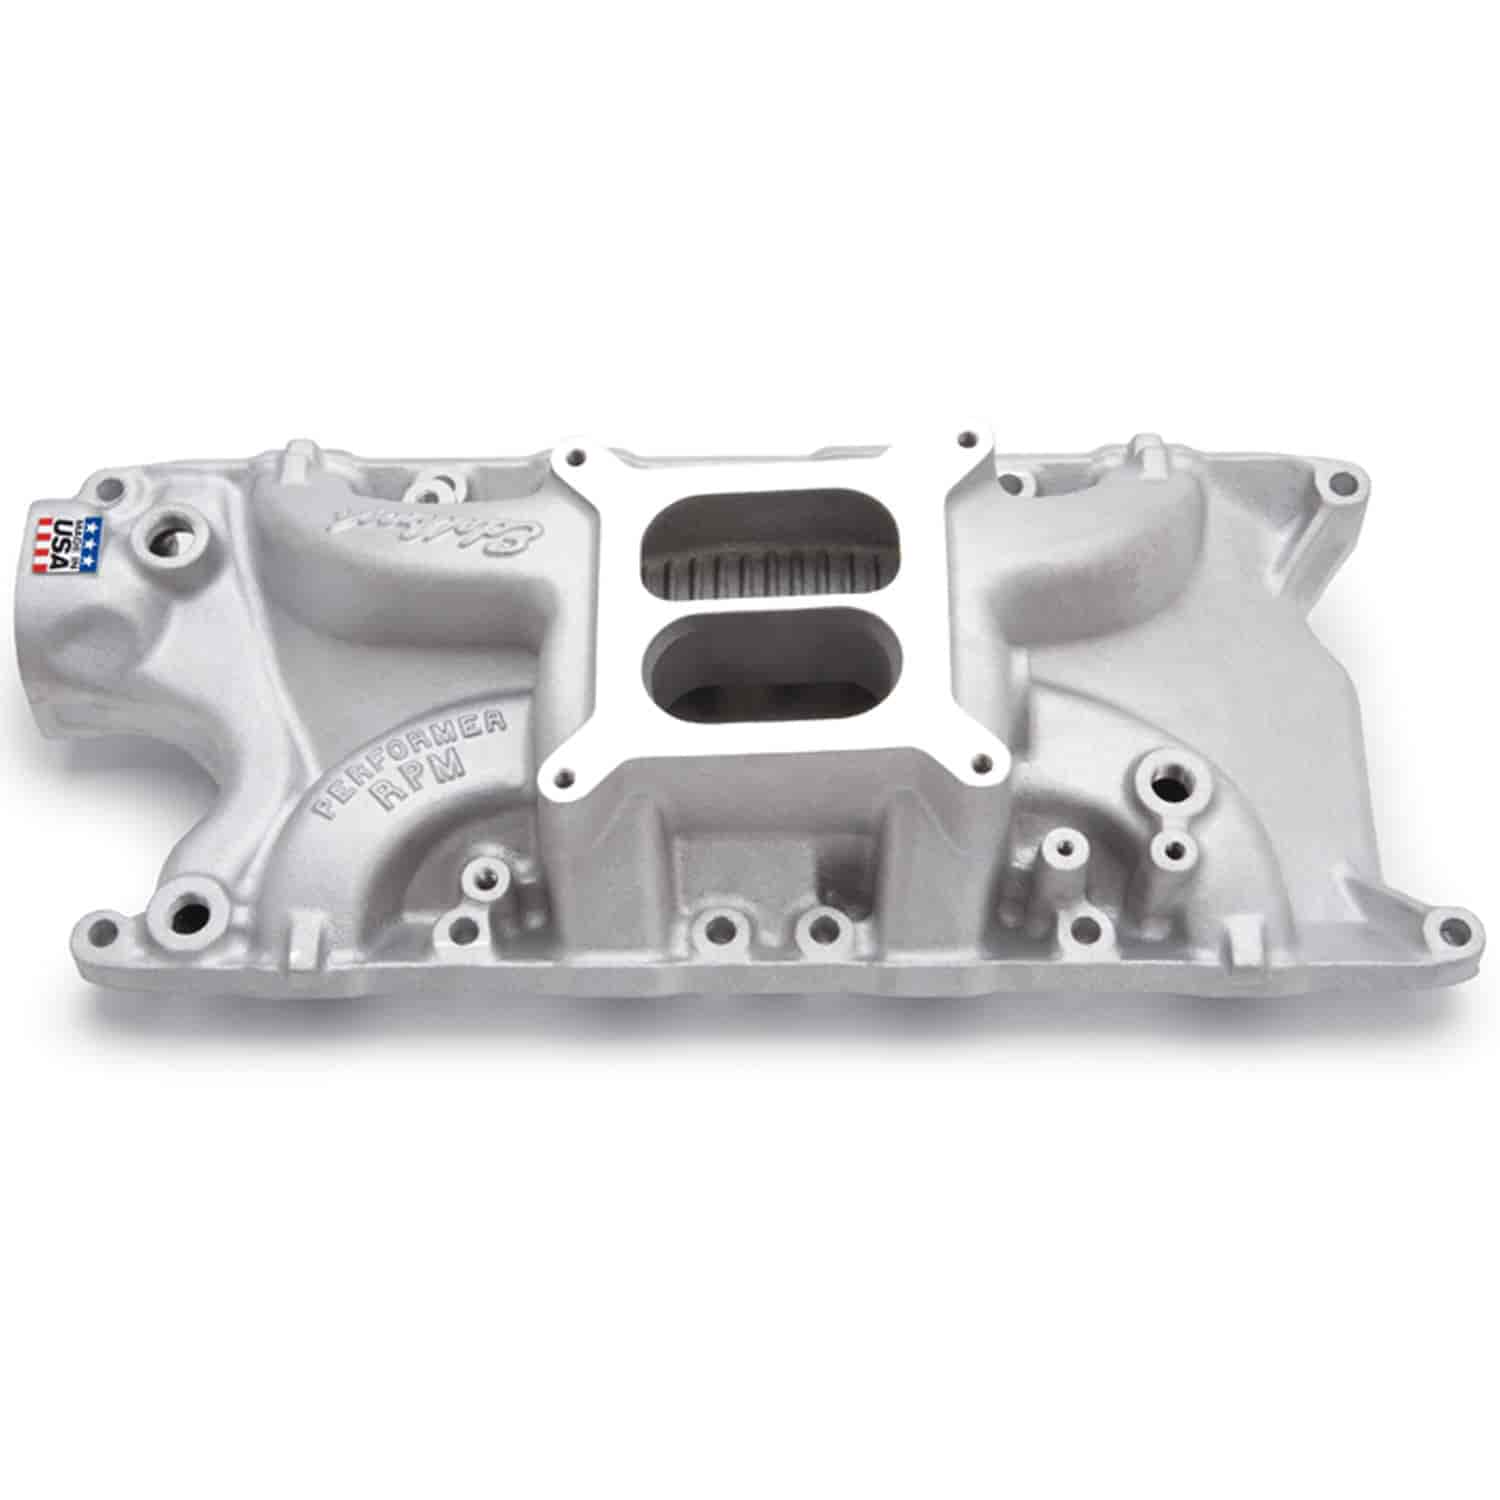 Edelbrock 7121 - Edelbrock Performer RPM Manifolds & Kits for Ford